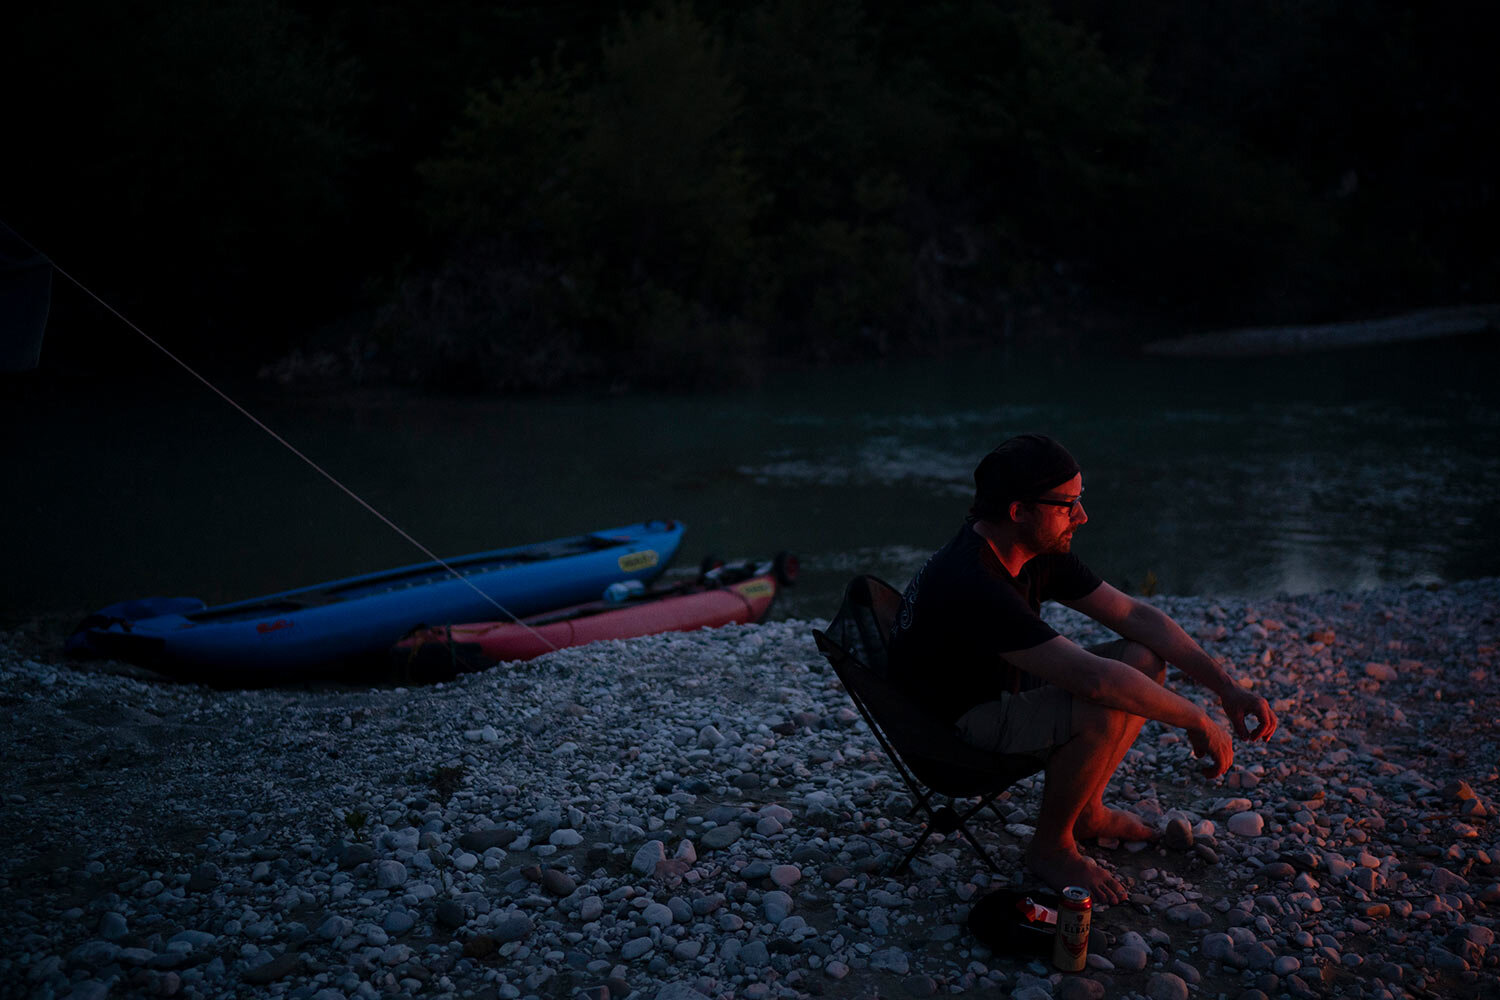 Sebastian Bäumler, 41, a German filmmaker kayaking the length of the Vjosa River, is illuminated by a bonfire as he sits next to his kayak on its bank in Albania. (AP Photo/Felipe Dana)